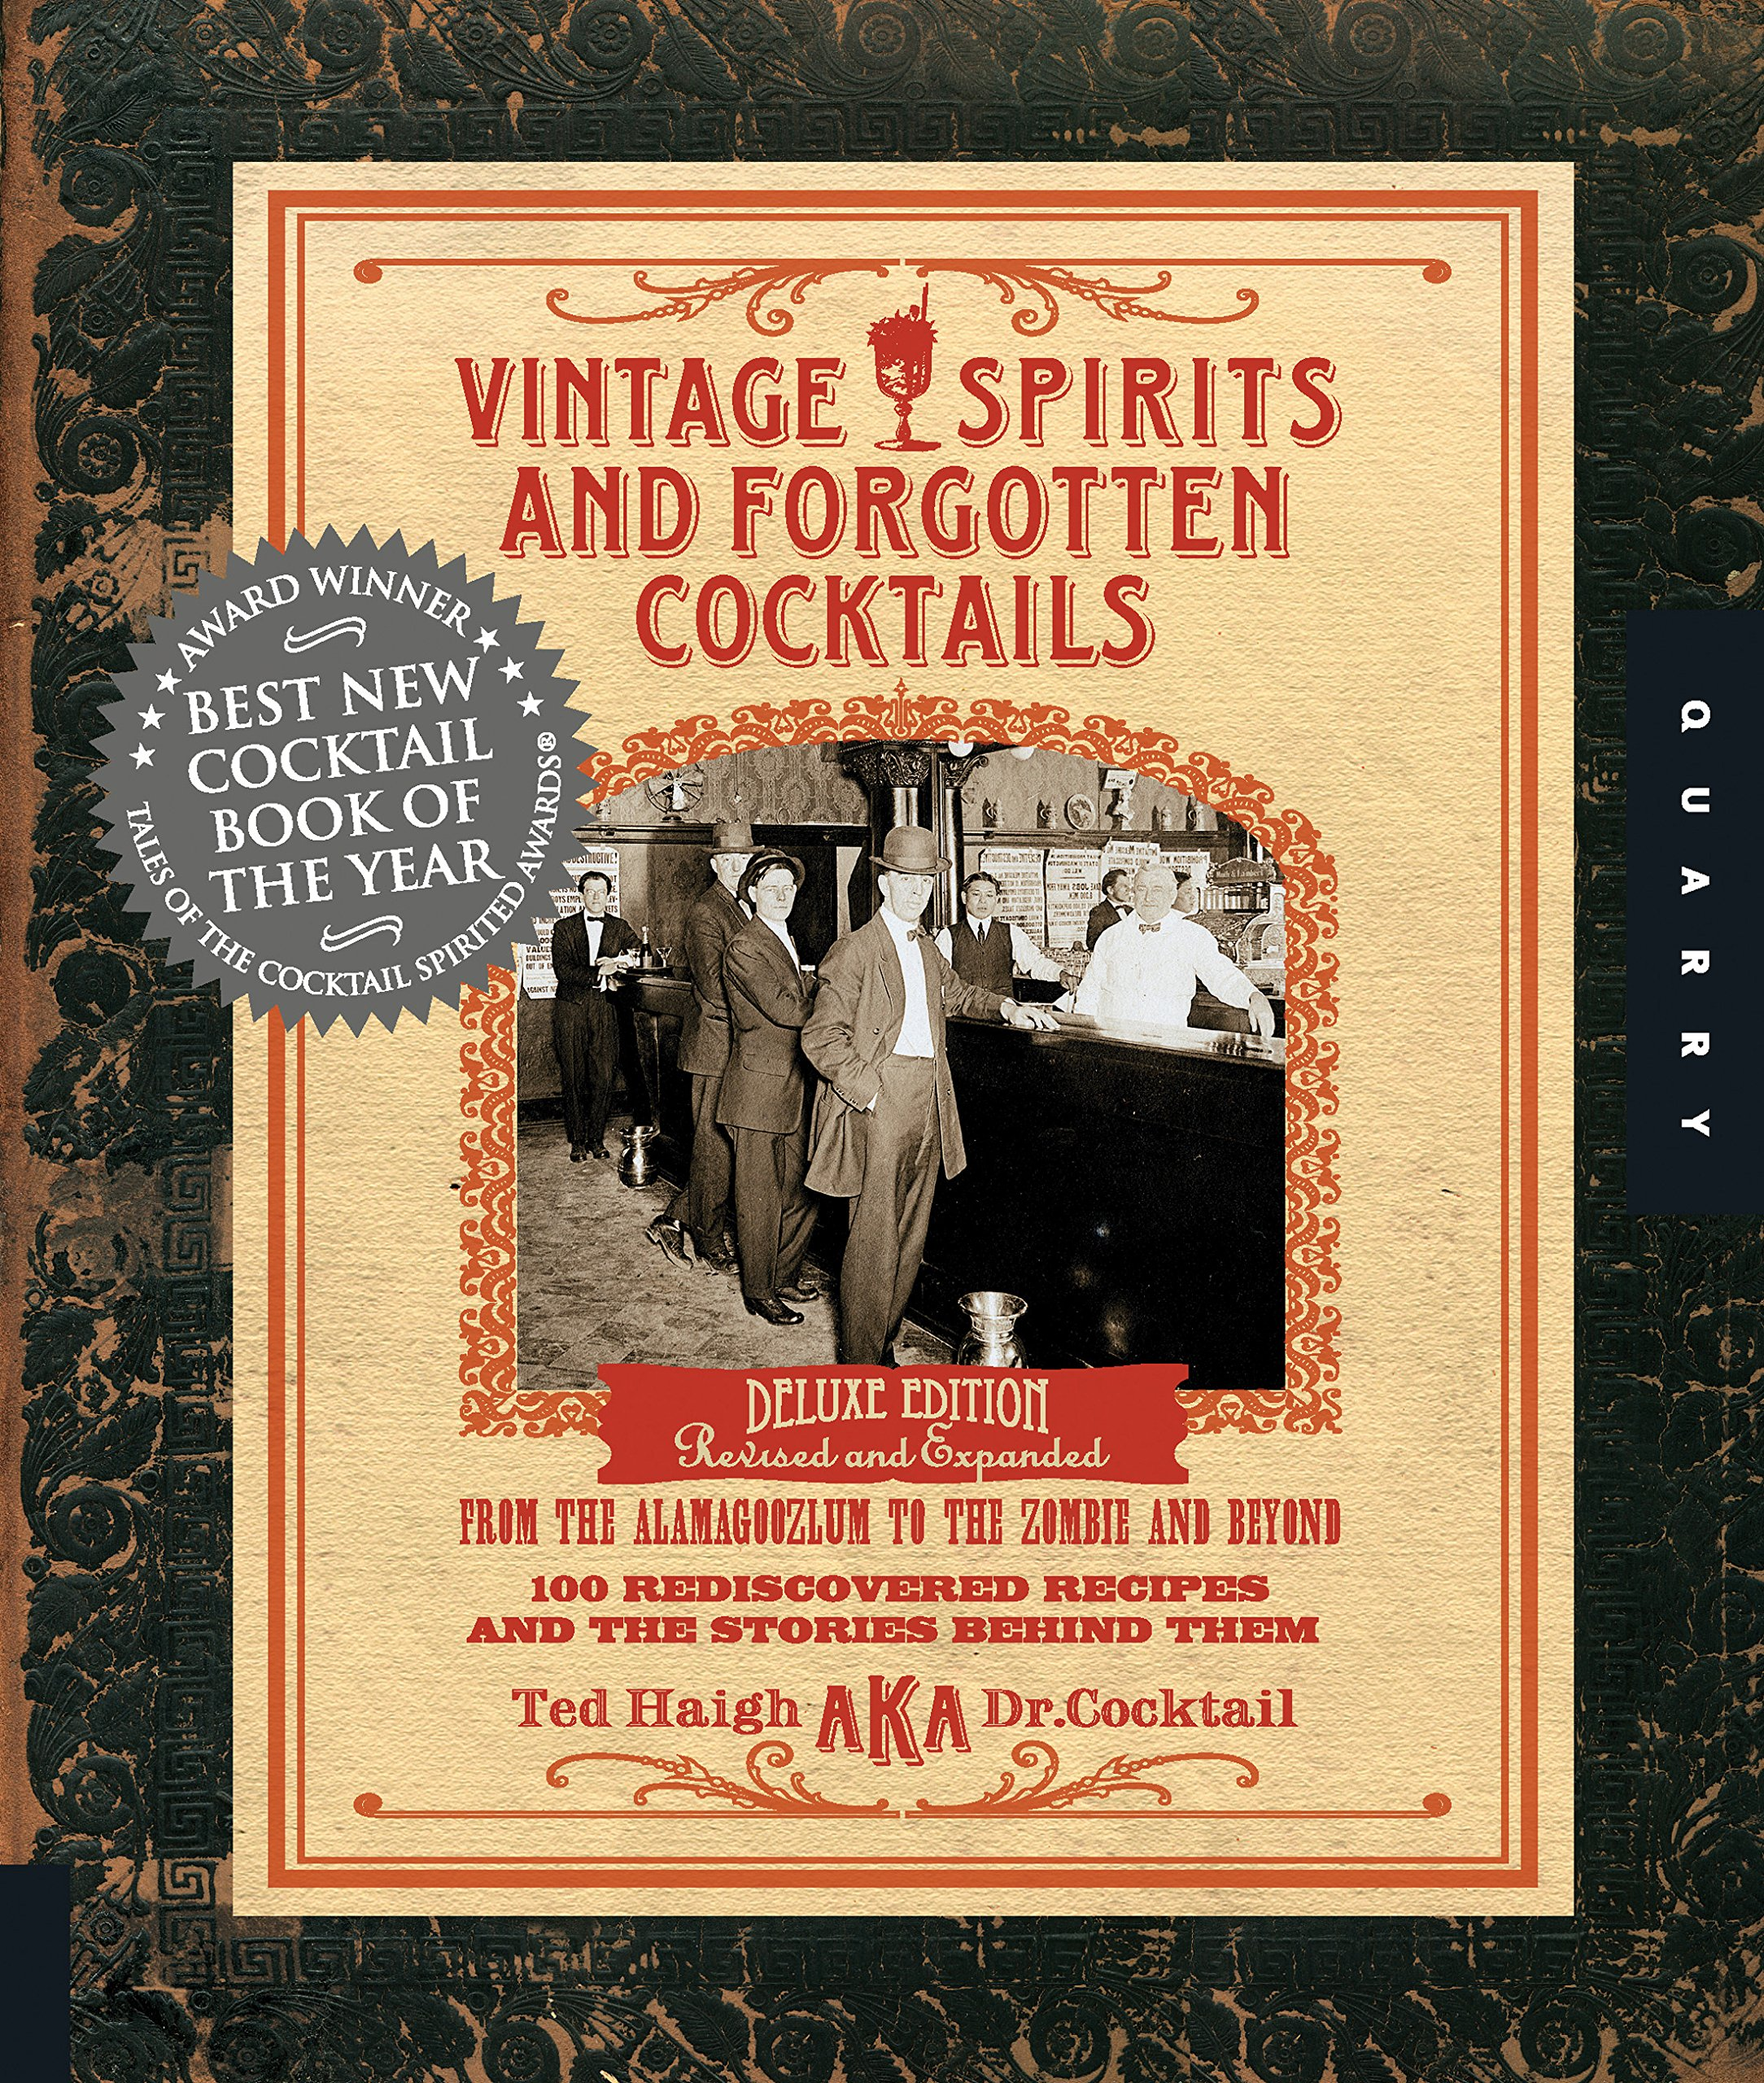 Vintage Spirits and Forgotten Cocktails: From the